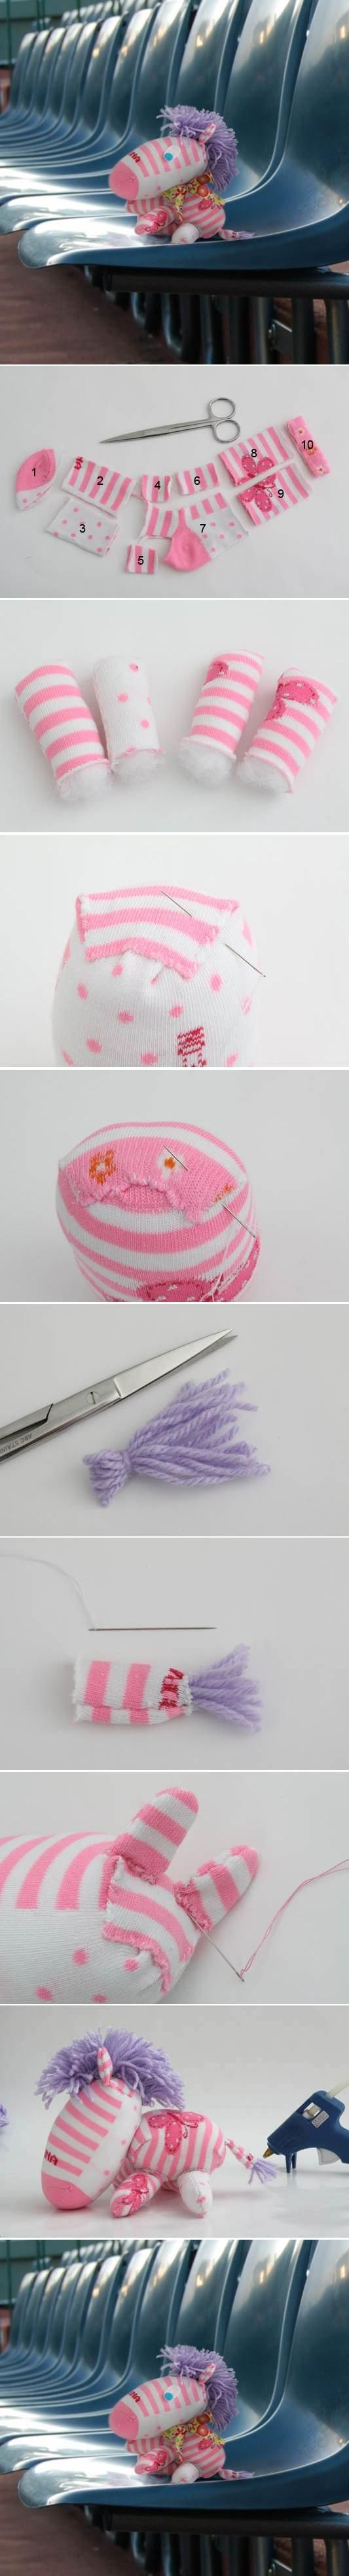 DIY Little Sock Zebra